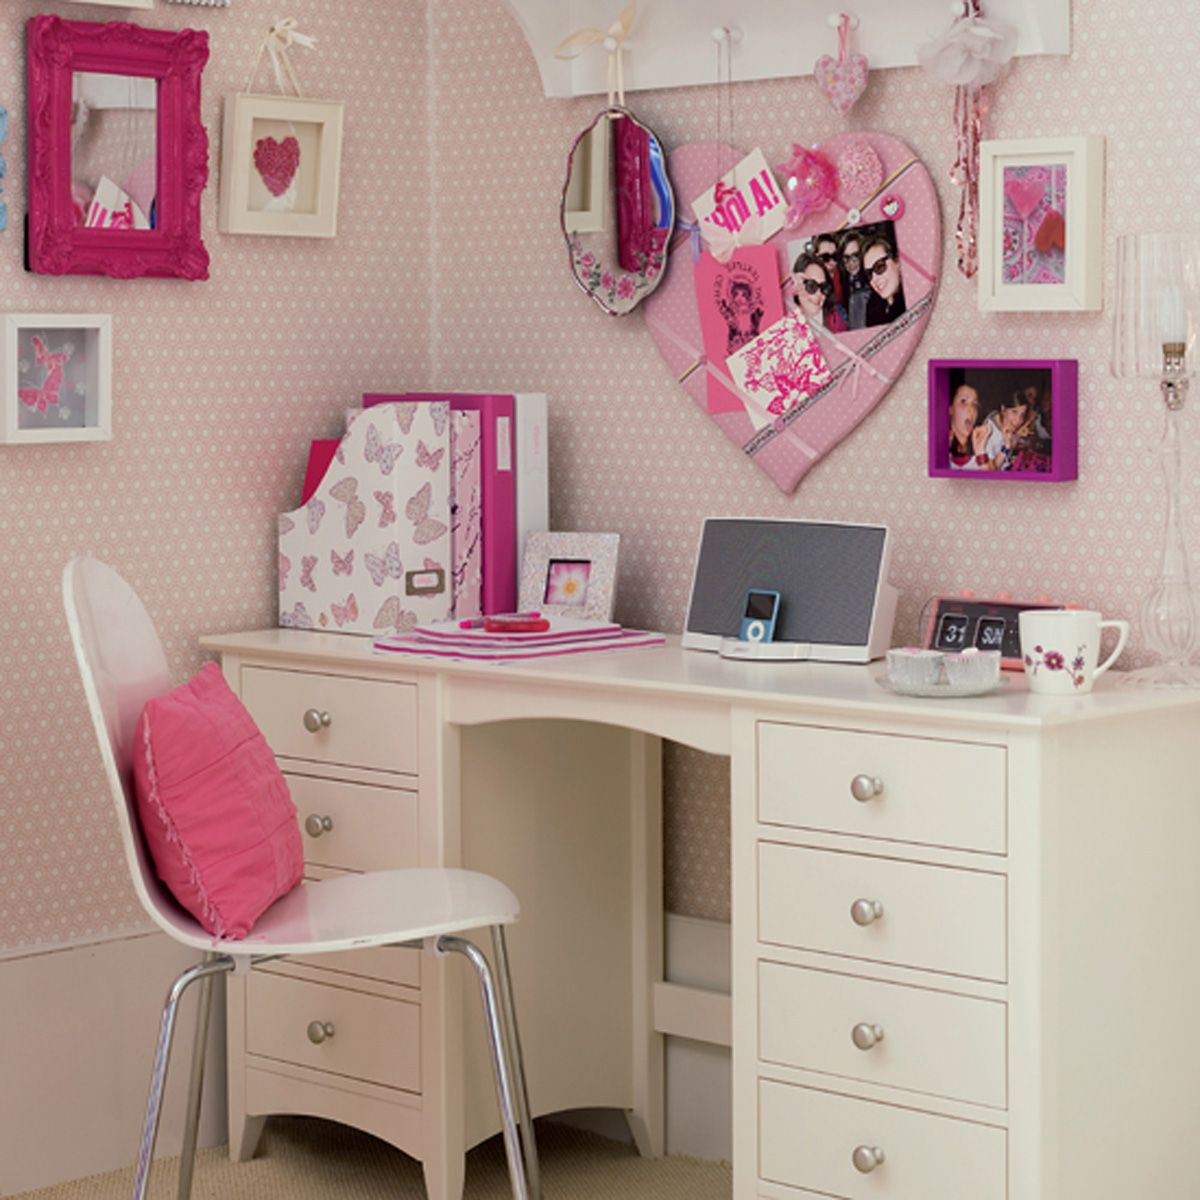 Desks For Teenagers Rooms Teensbedroomgorgiandesksforteenagerswithwhitepainted8